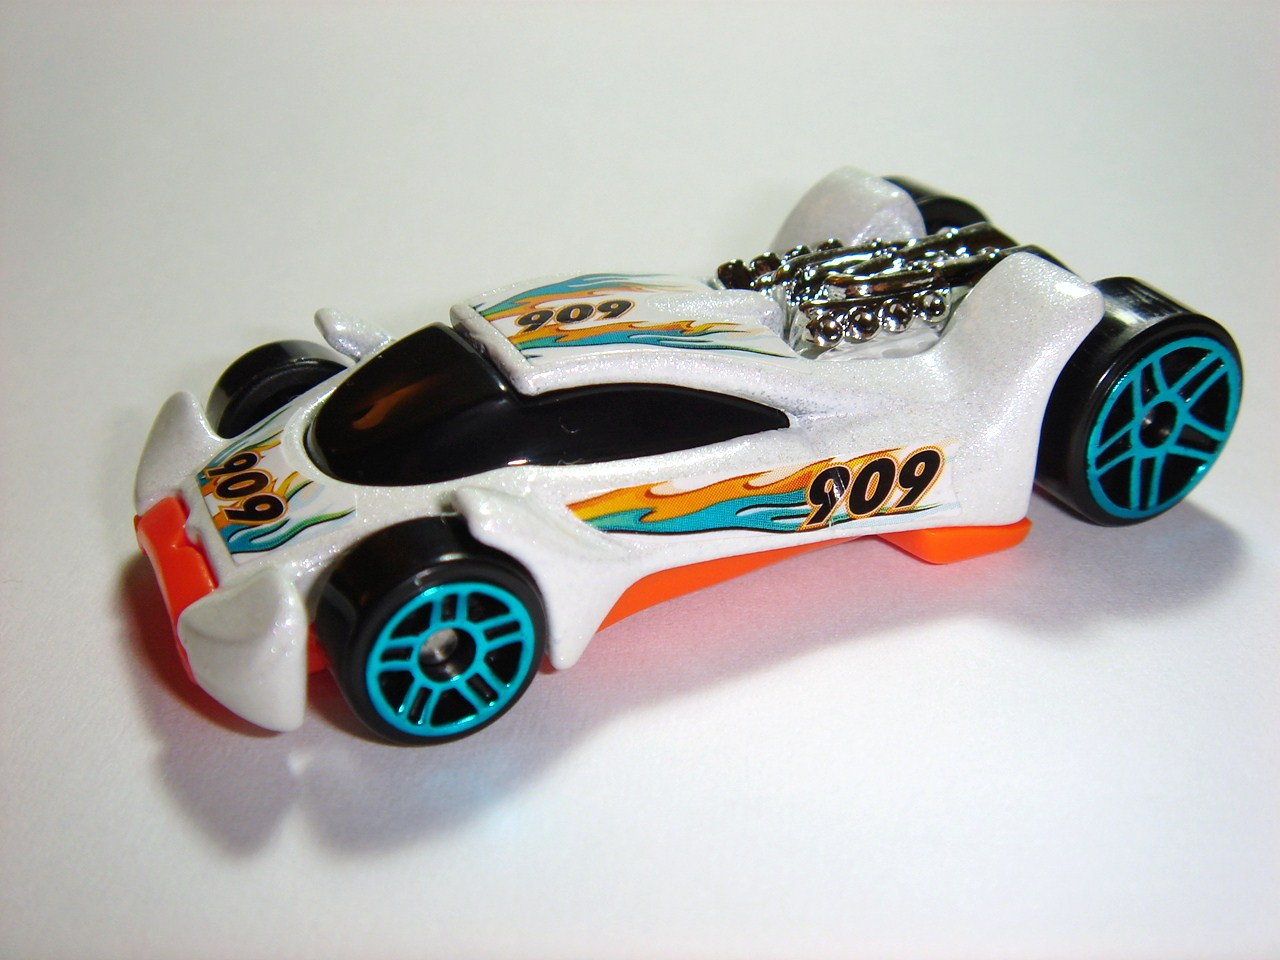 Qisupplements also Hot Wheels Vulture in addition File Nervonic acid together with 3312992 additionally Product List And Catalog 2012. on nervonic acid